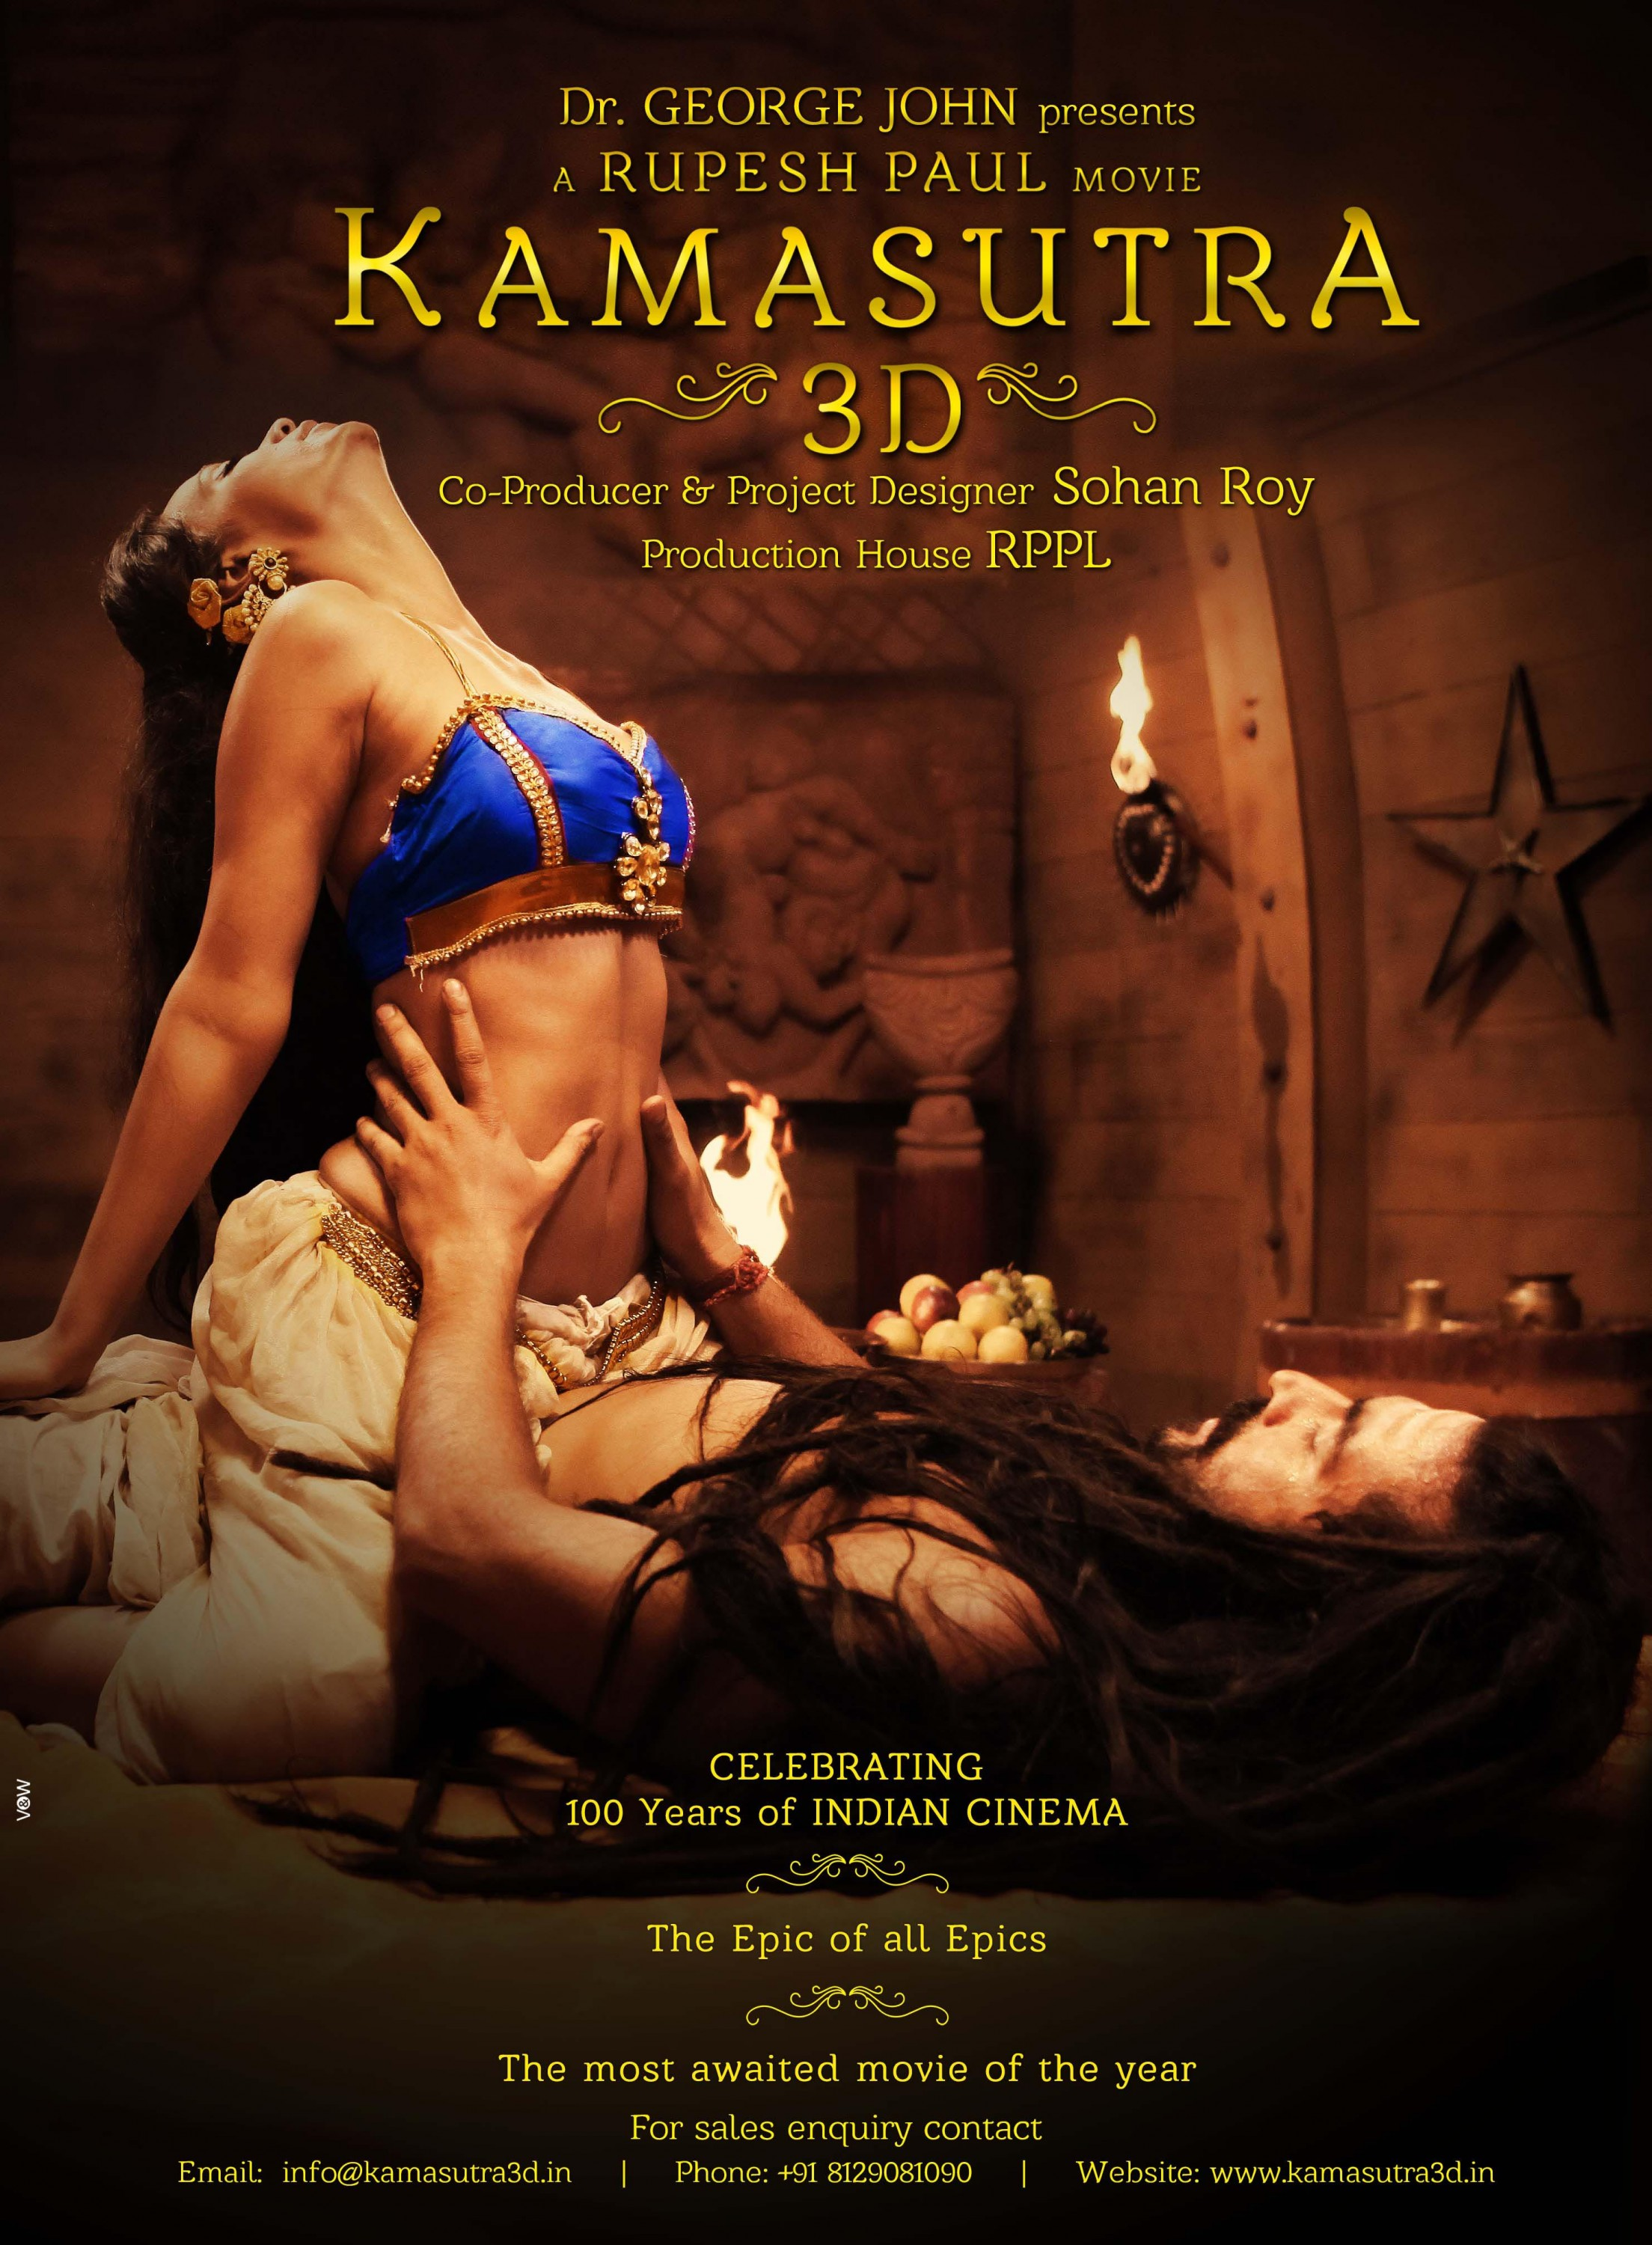 3d sex movies 3gp nsfw pictures